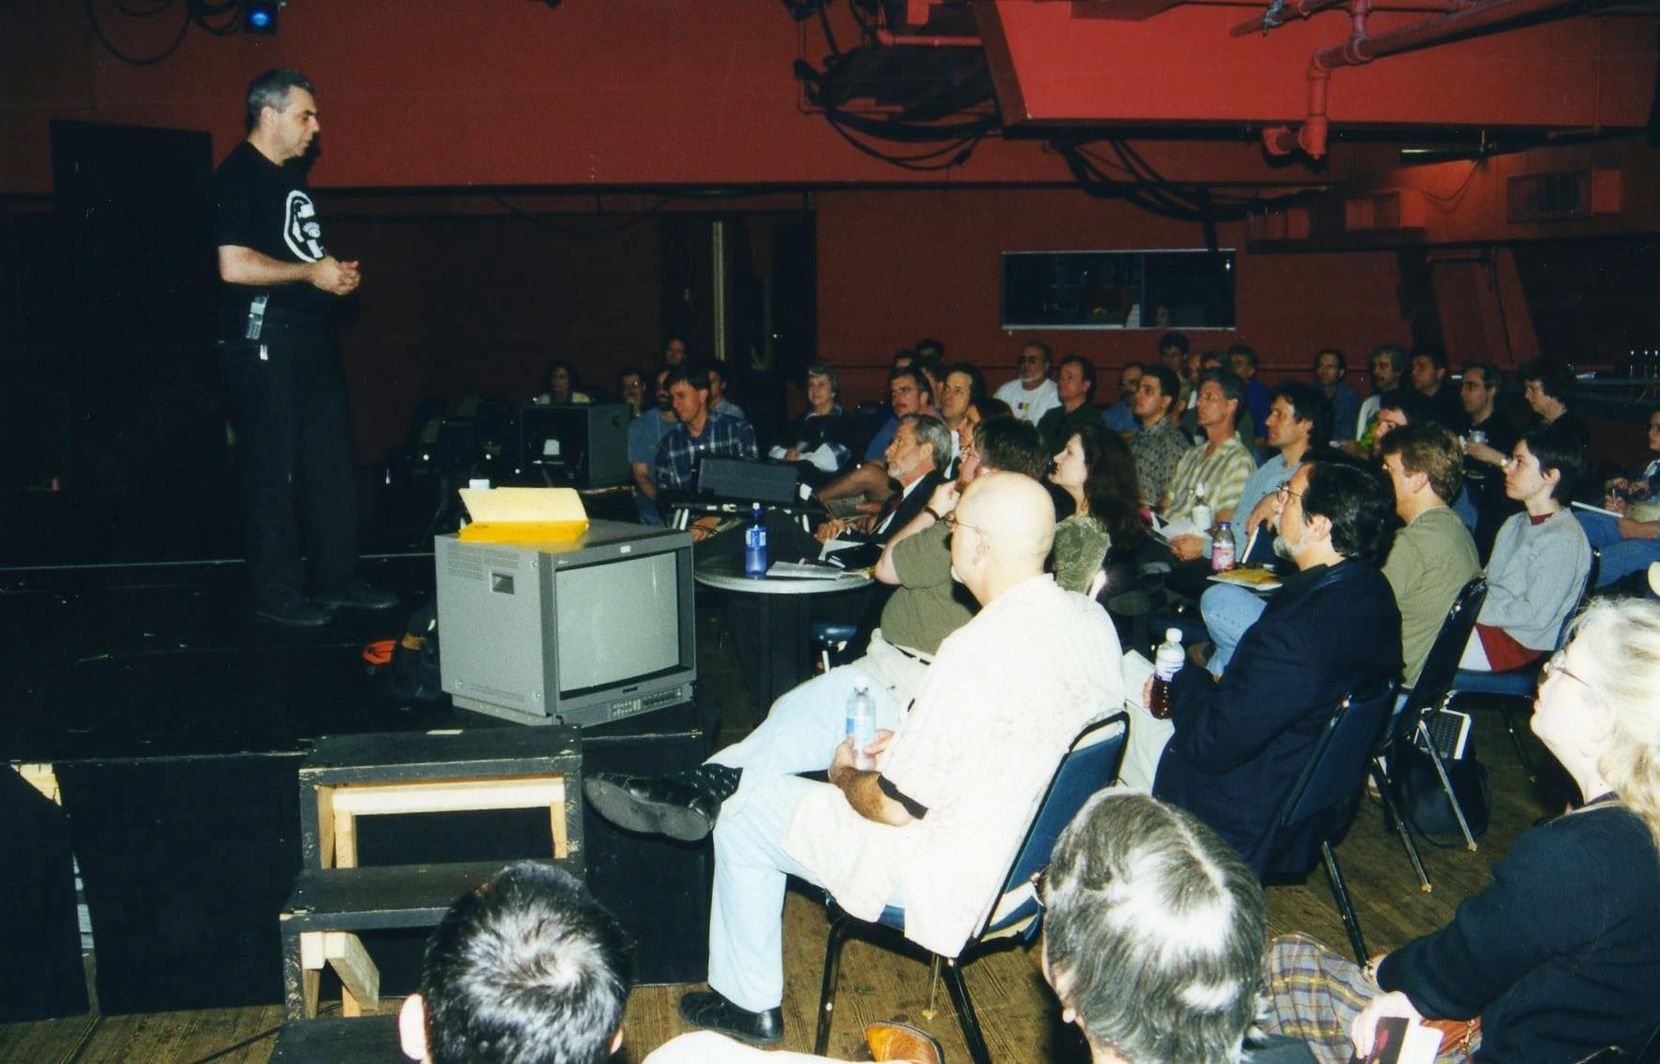 Bart Weiss addressing the Dallas Video Festival audience upstairs at the Kalita Humphreys Theater during the heyday of the festival.